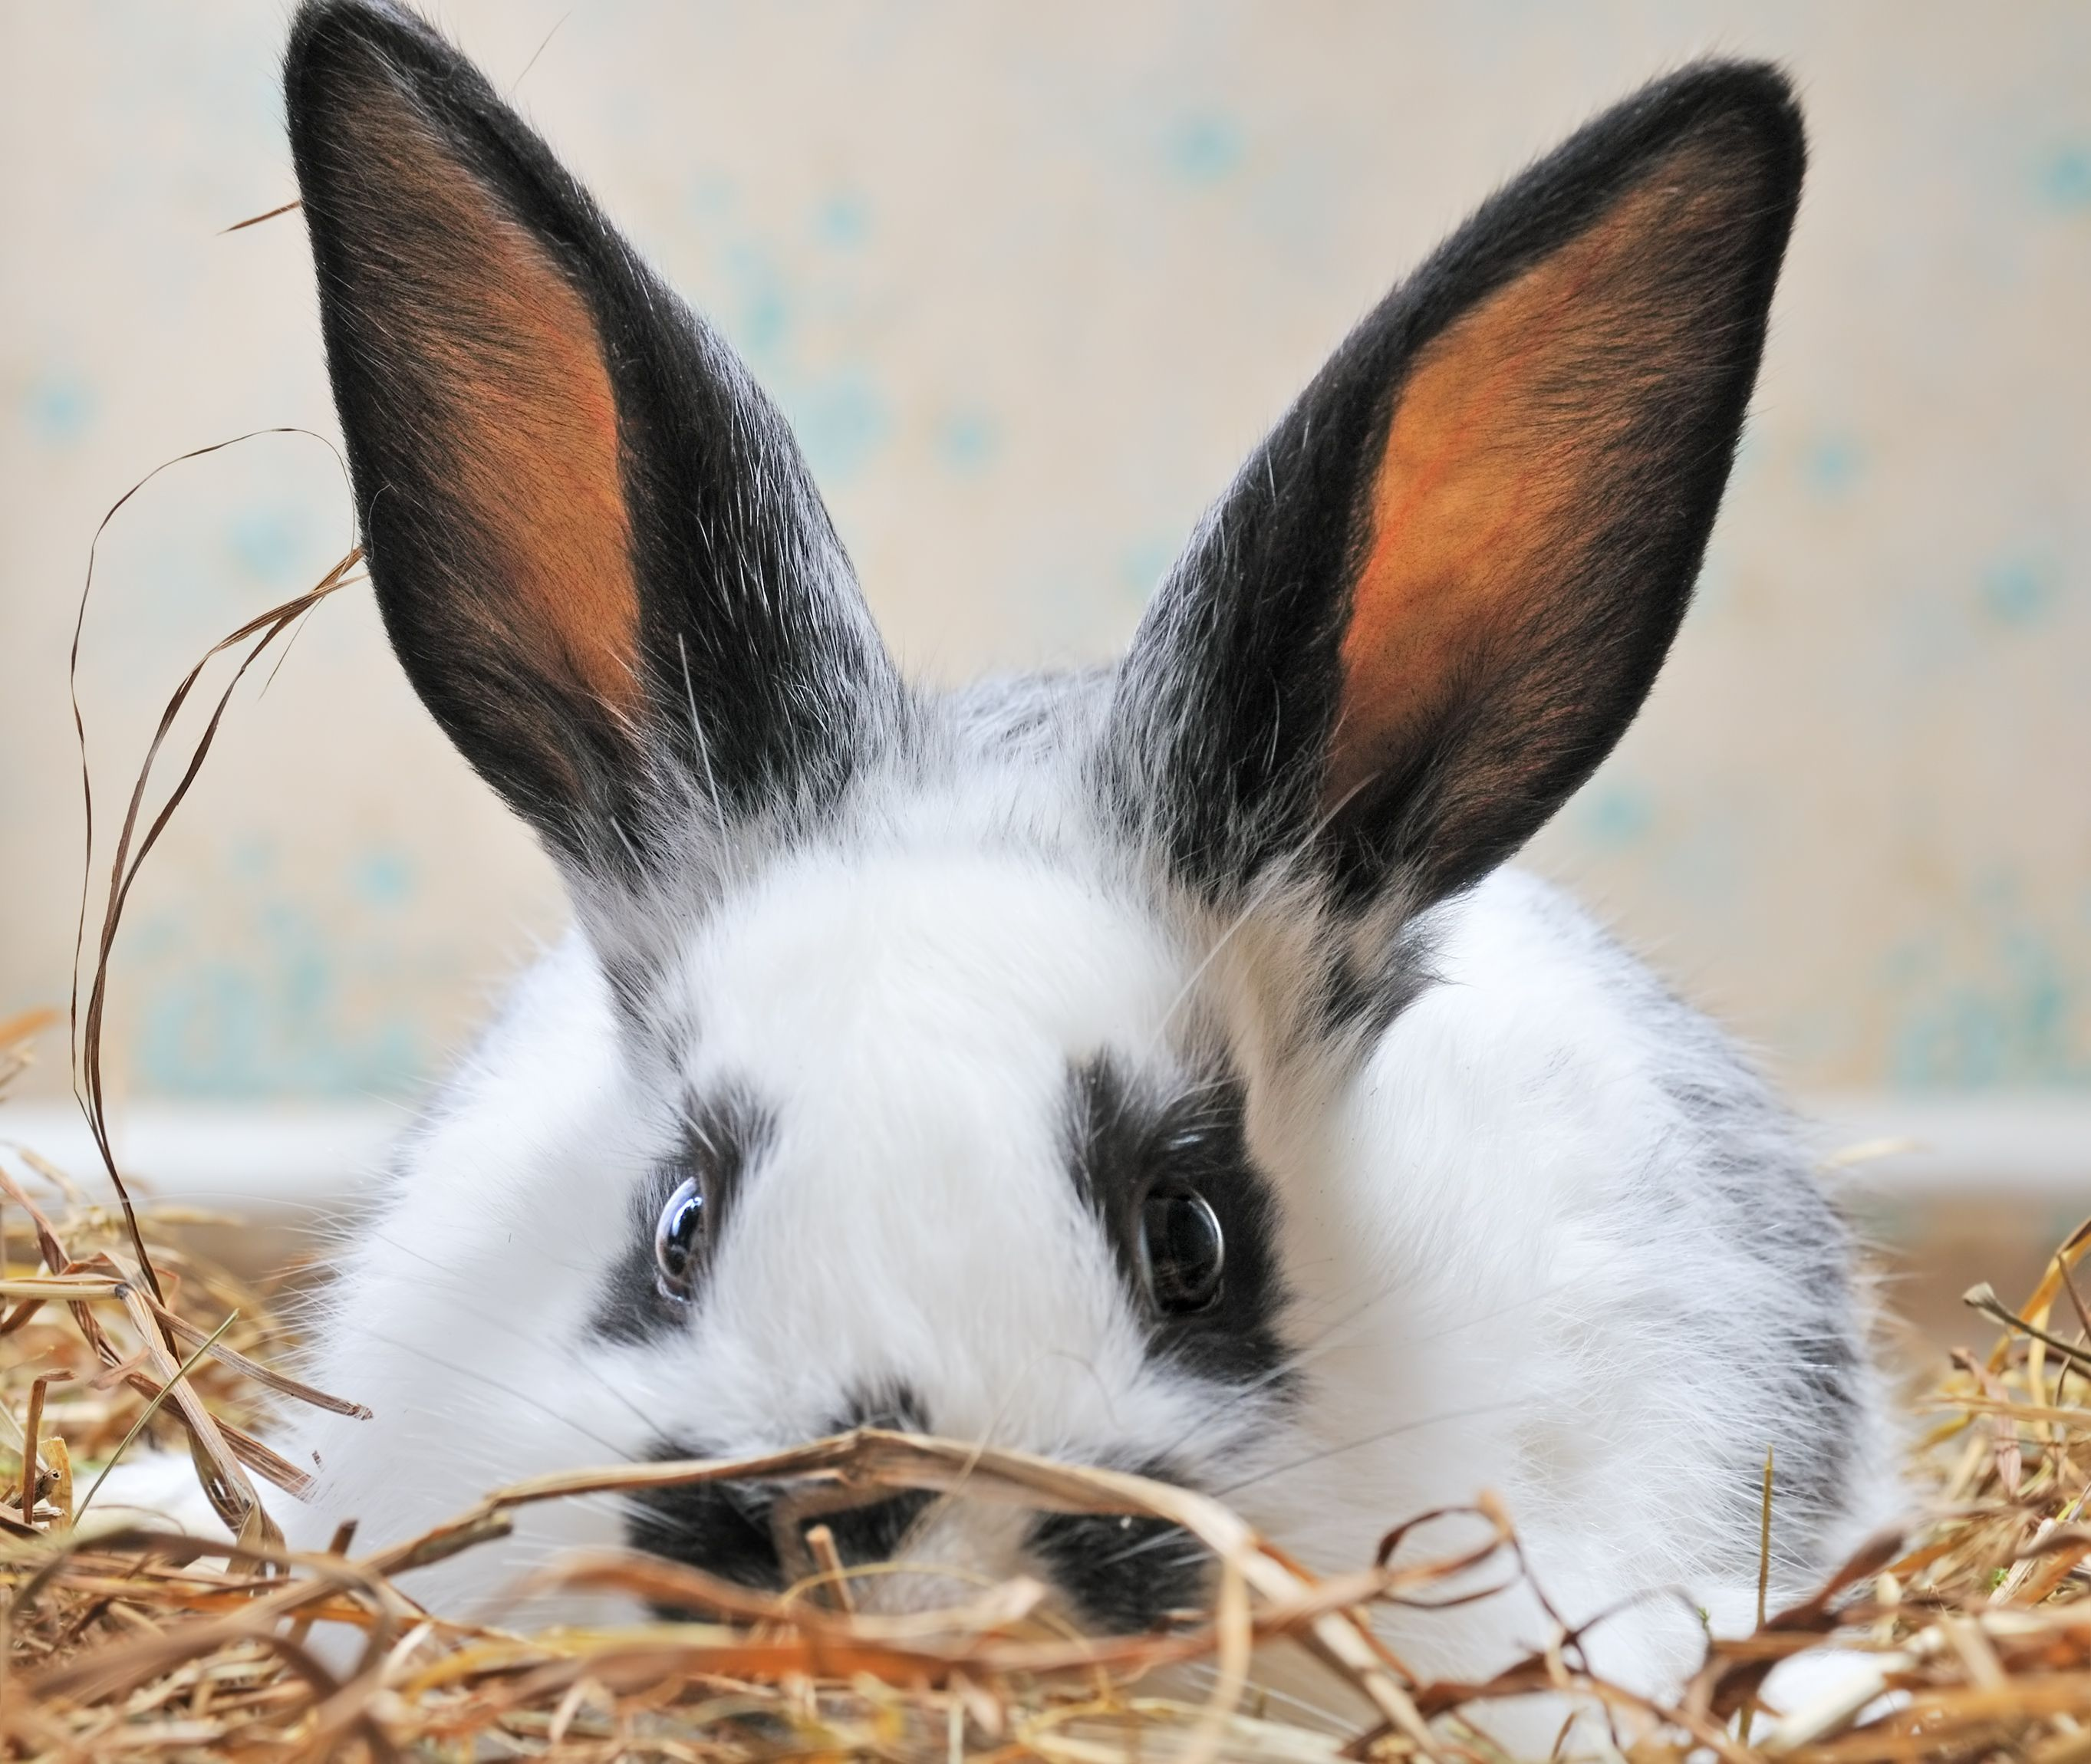 The online store, Gifts for rabbit lovers Pet bunnies